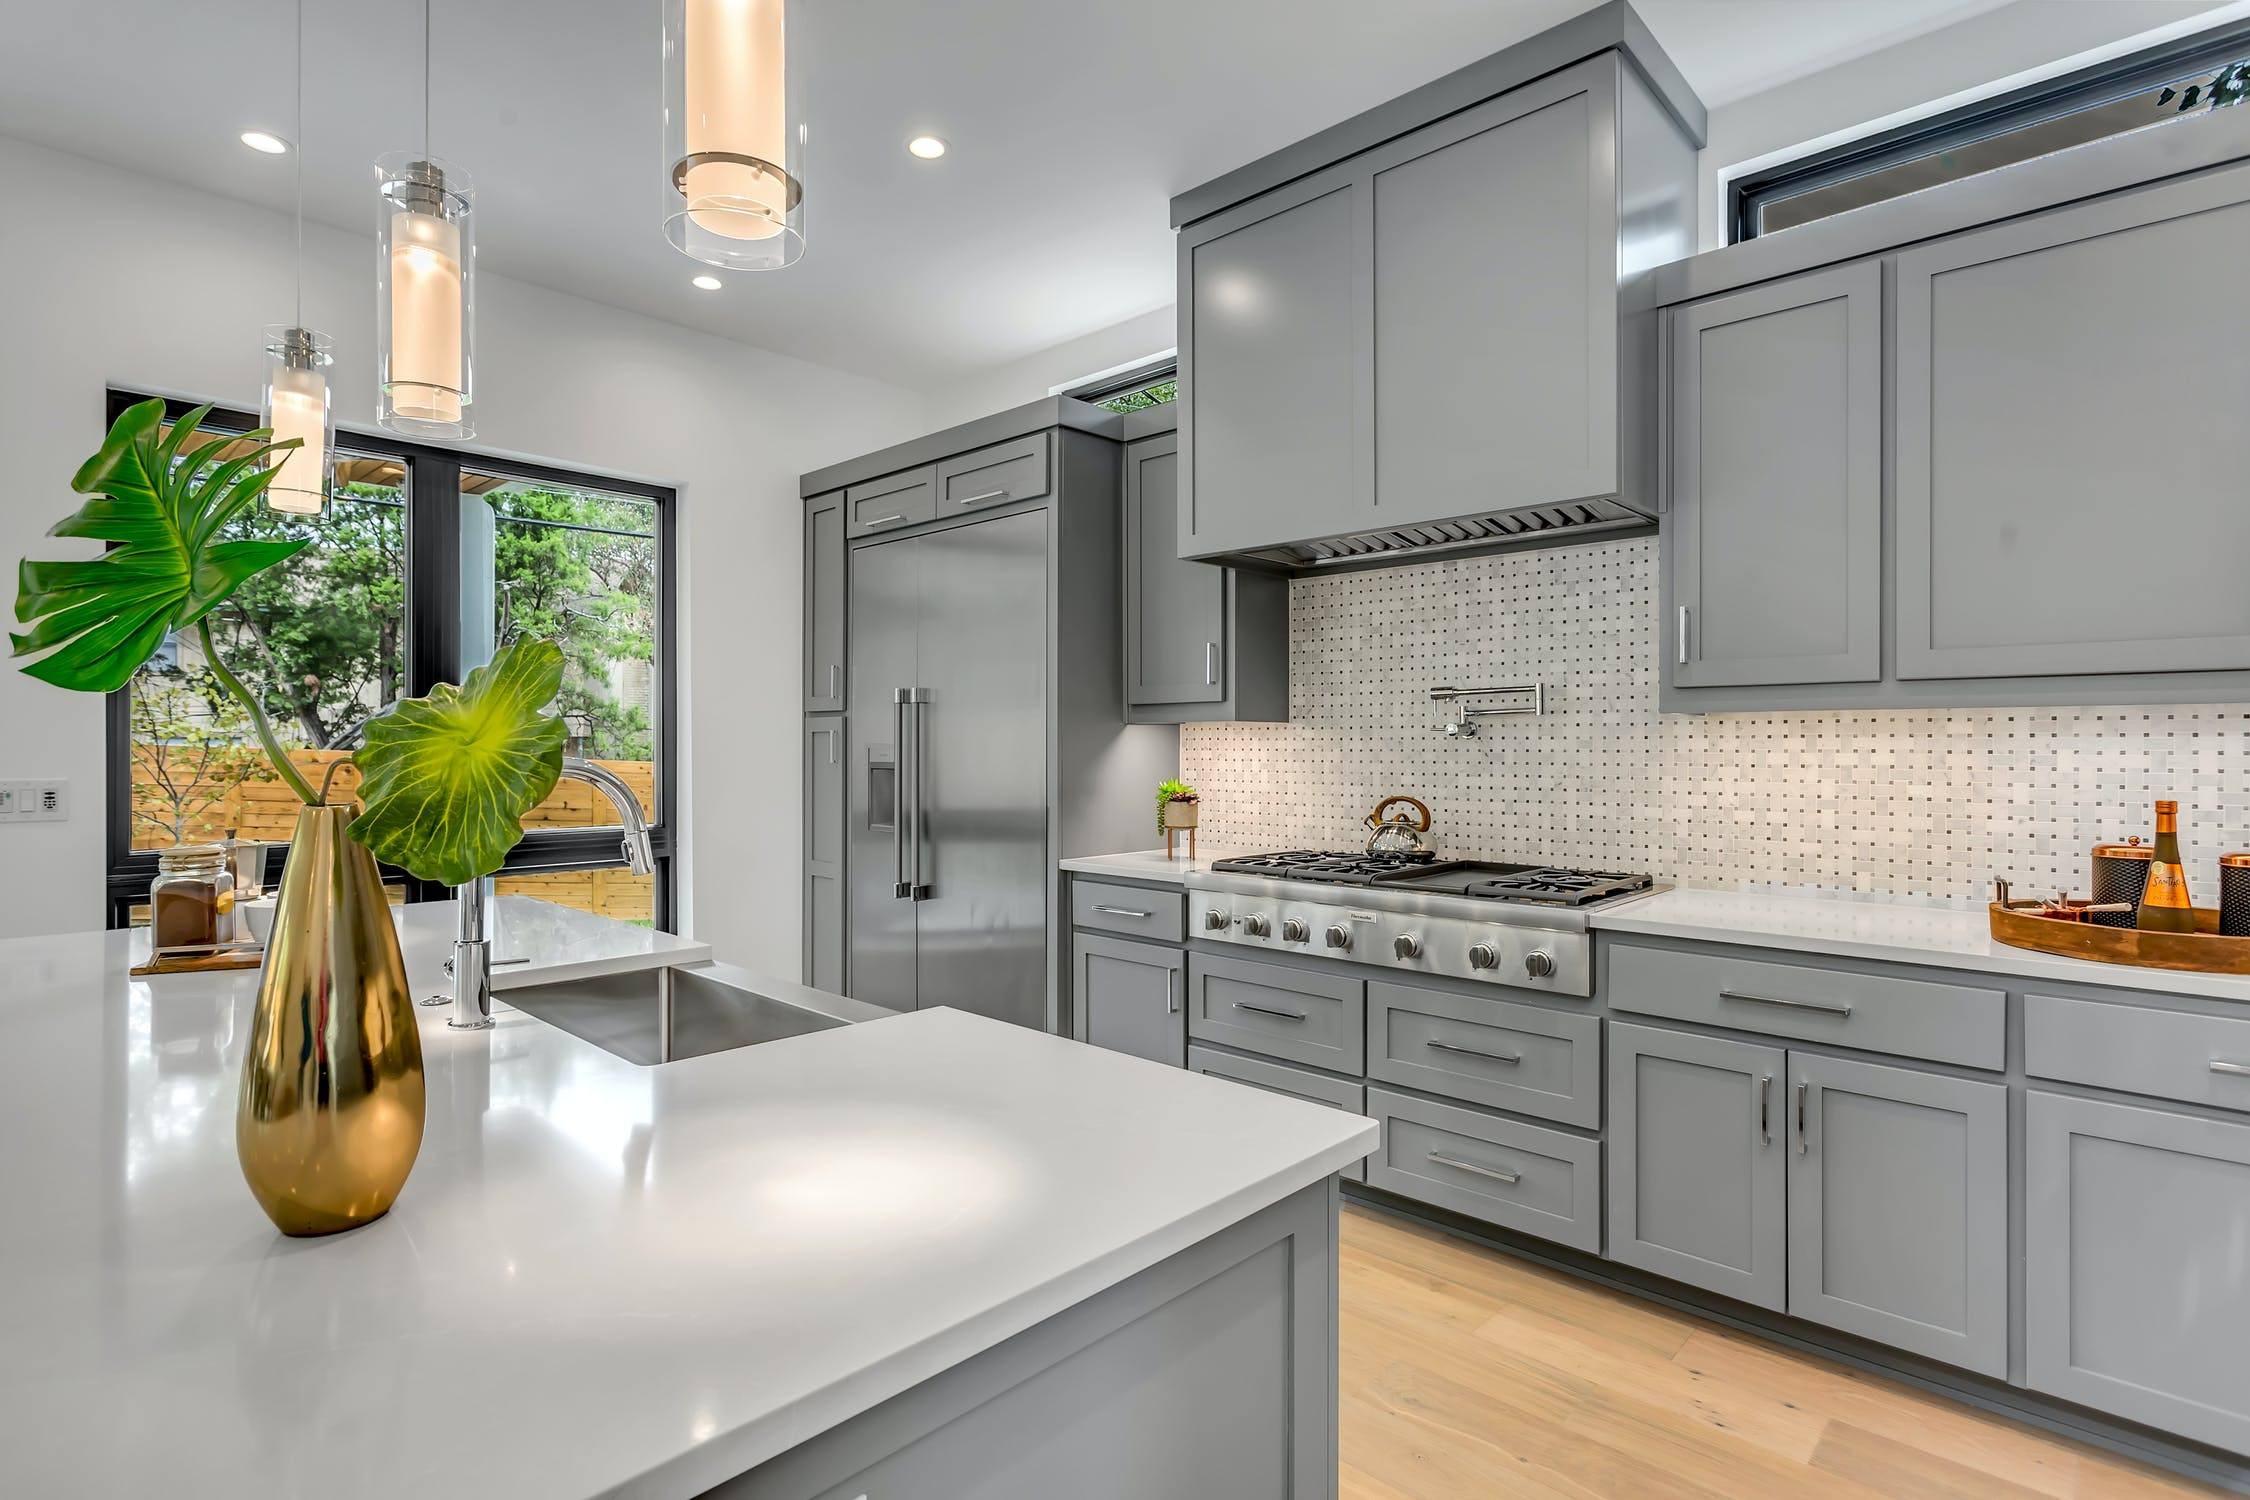 Kitchen remodel in Grey tones with Quartz counters.